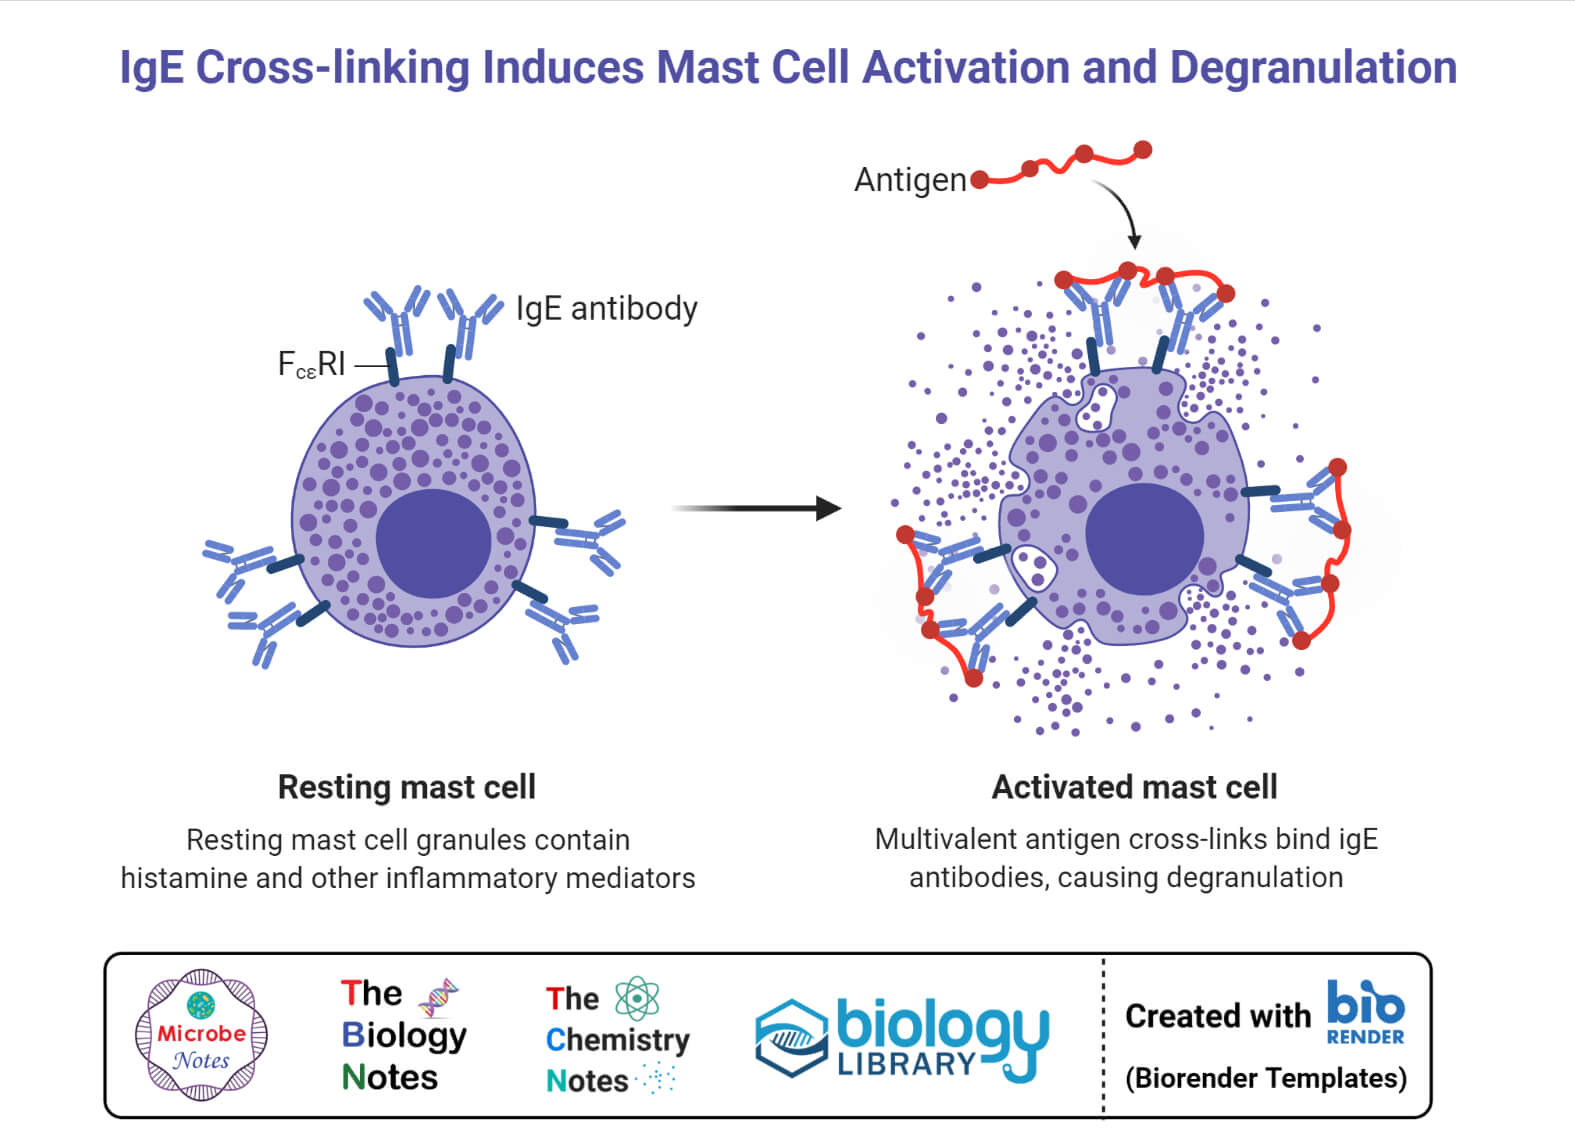 IgE Cross-linking Induces Mast Cell Activation and Degranulation